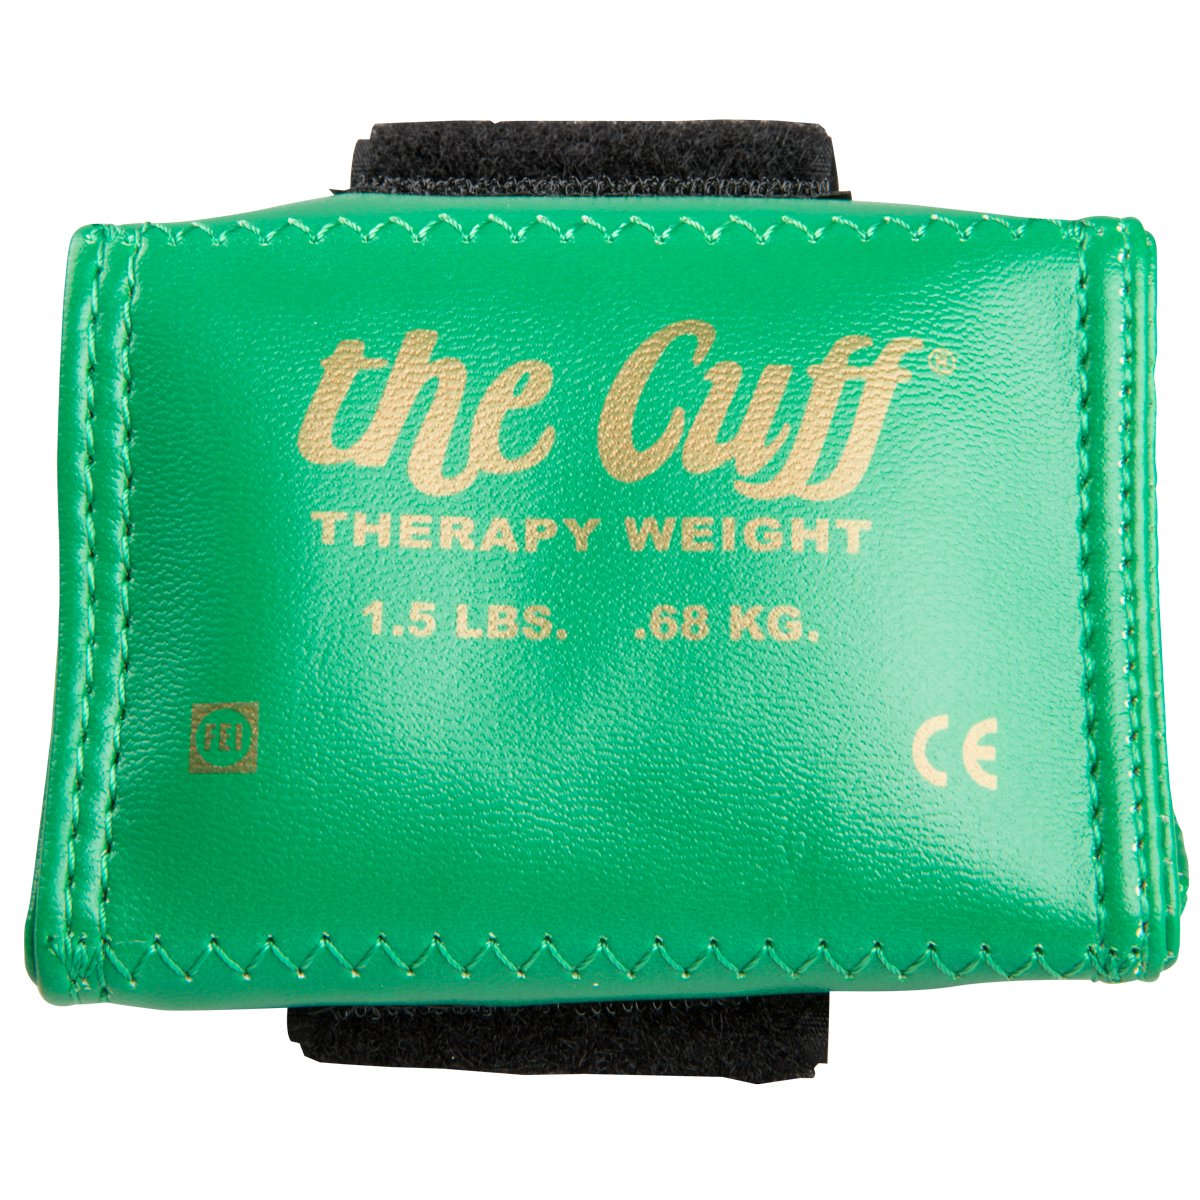 2.5 lb the Cuff Red Cando 10-0206 The Original Cuff Ankle and Wrist Weight